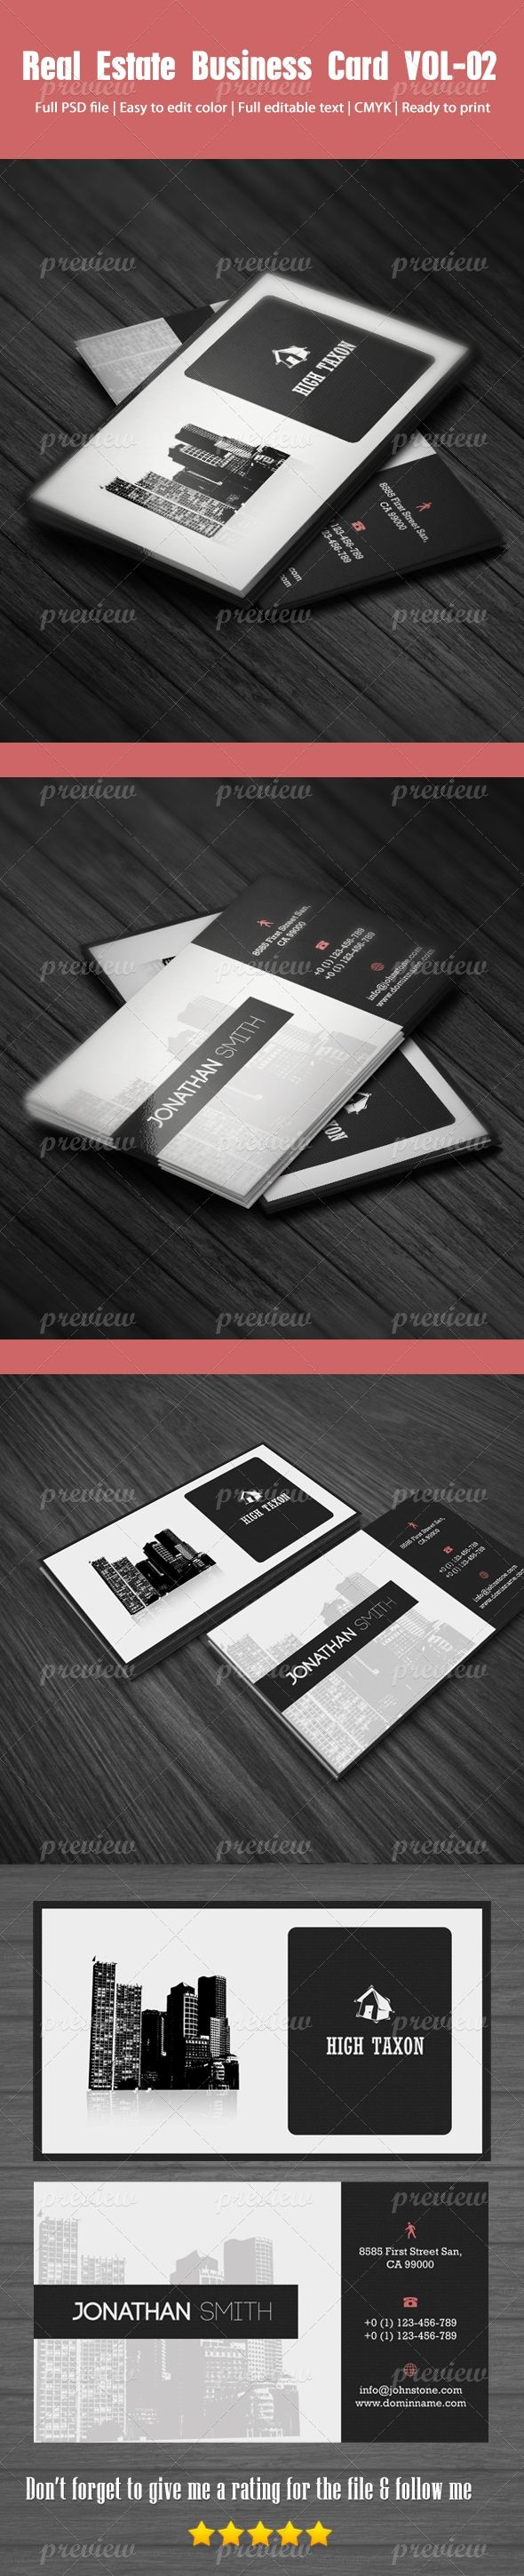 128 Best Real Estate Business Cards Images On Pinterest Business